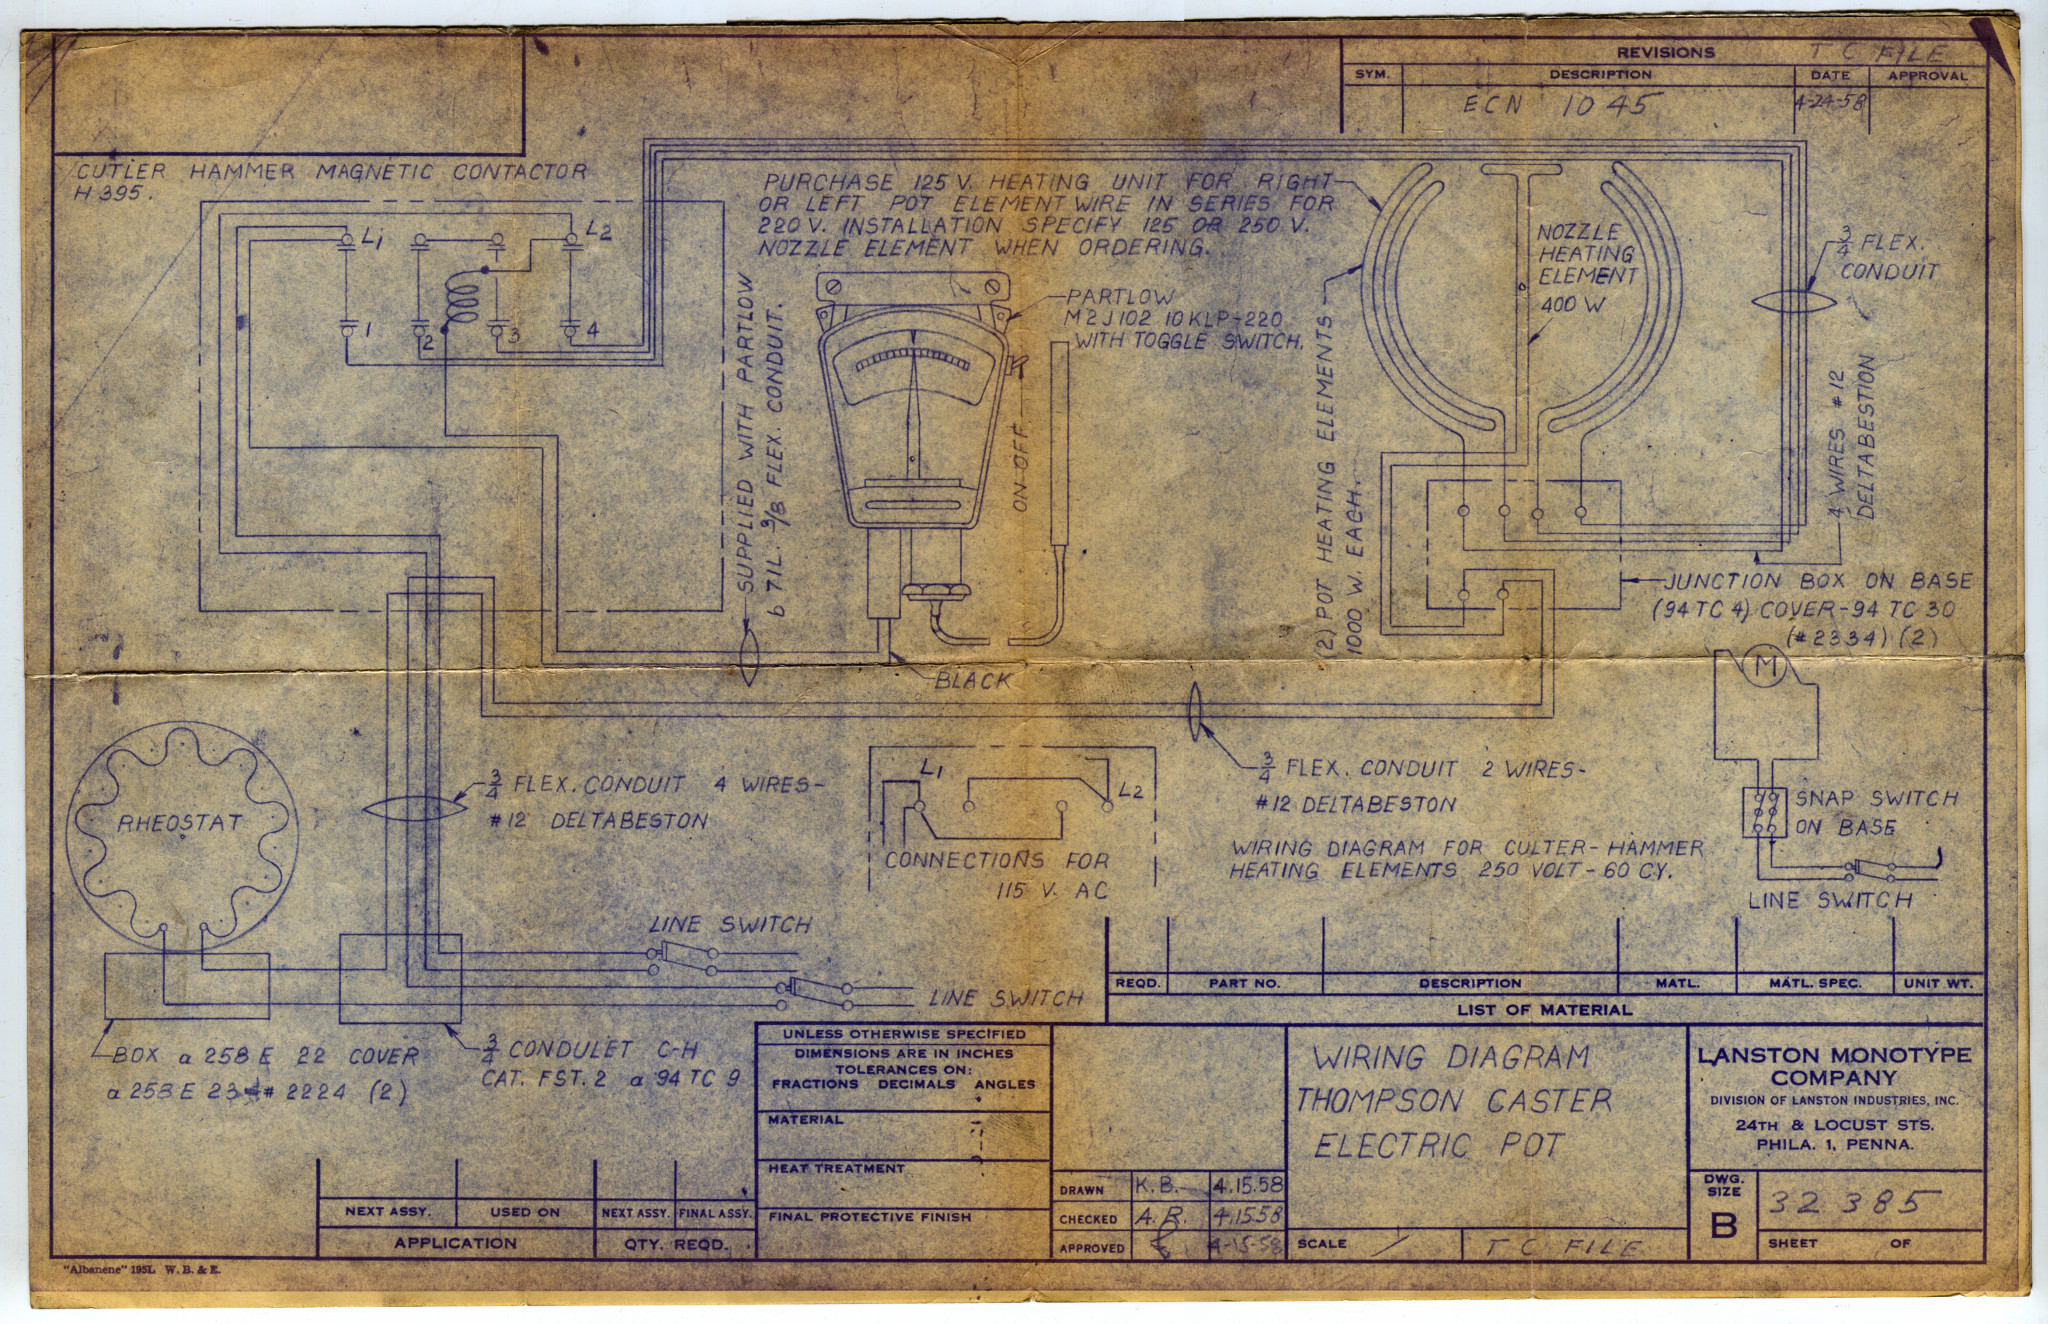 85 258 Wiring Diagram And Schematics New Dryer Ecn Electrical Forums Carburator 1983 Cj7 Auto Source The Icon Above Left Links To A Pdf Format With Jpeg Image Inside Version Of